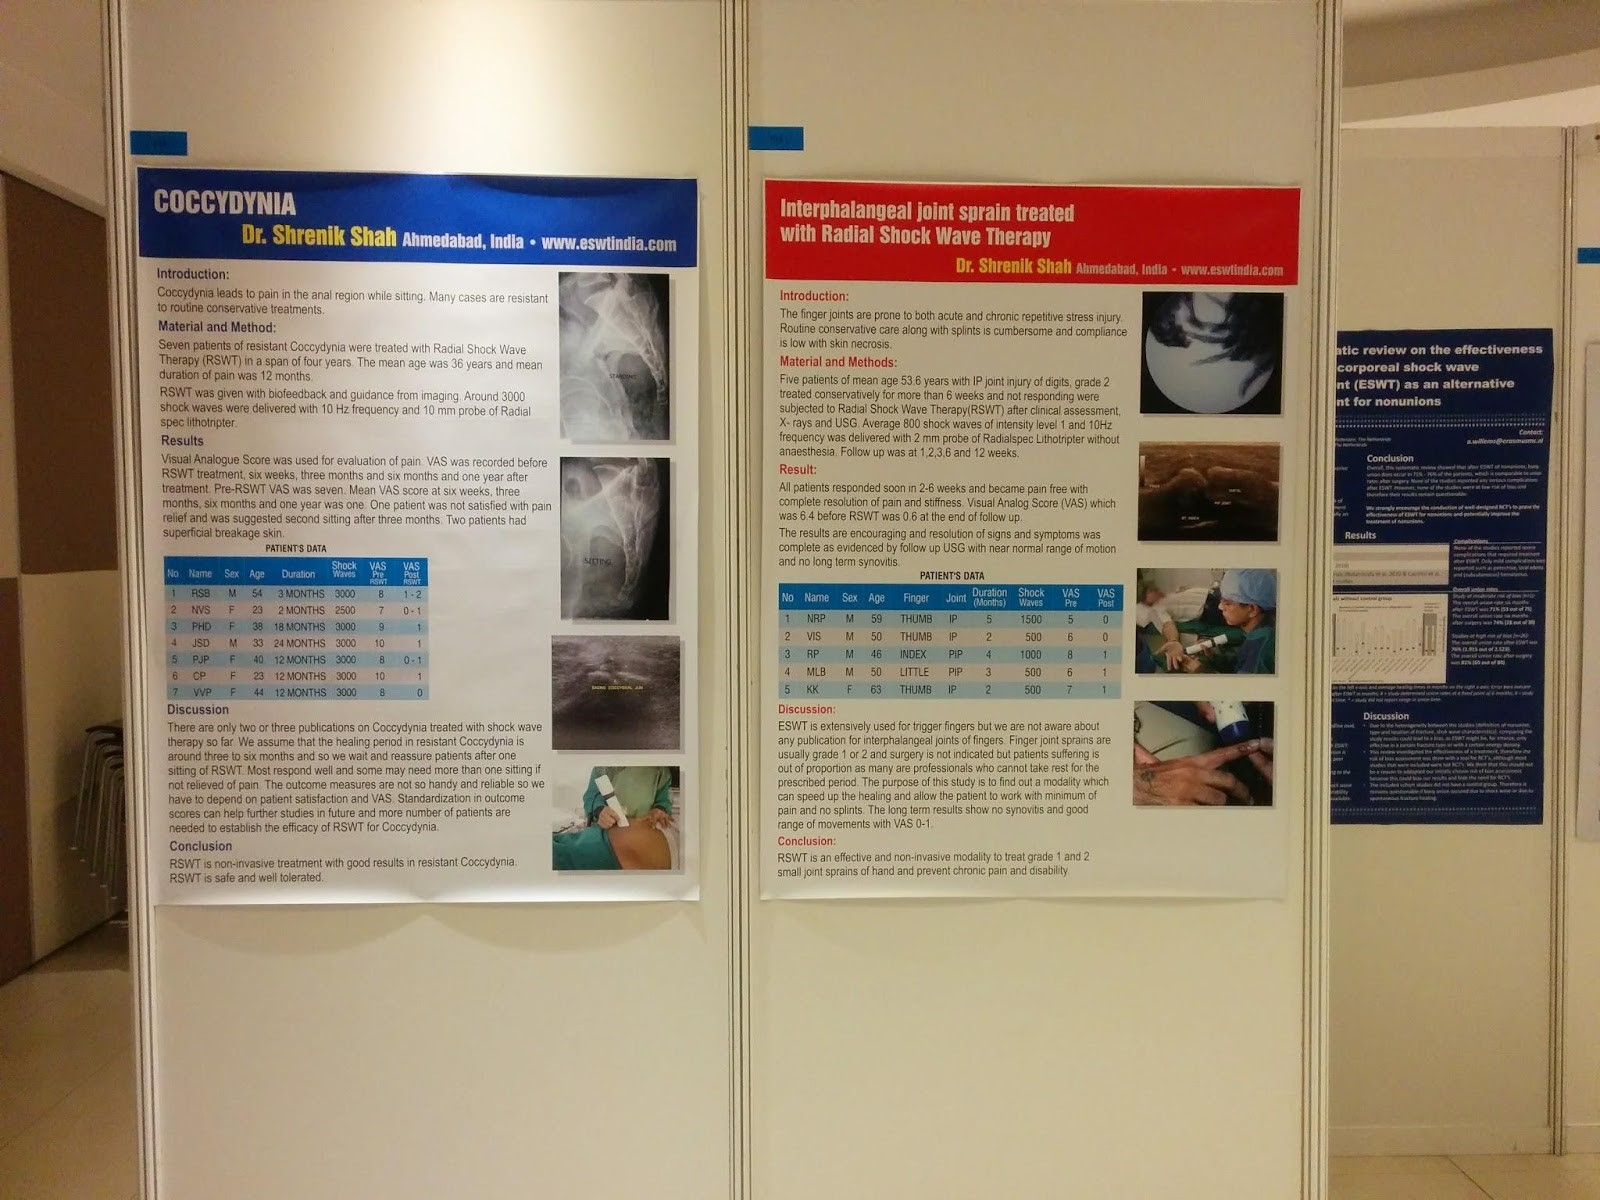 ANNUAL_CONFERENCE_OF_ISMST_AT_KIEL_GERMANY_IN_2011-4